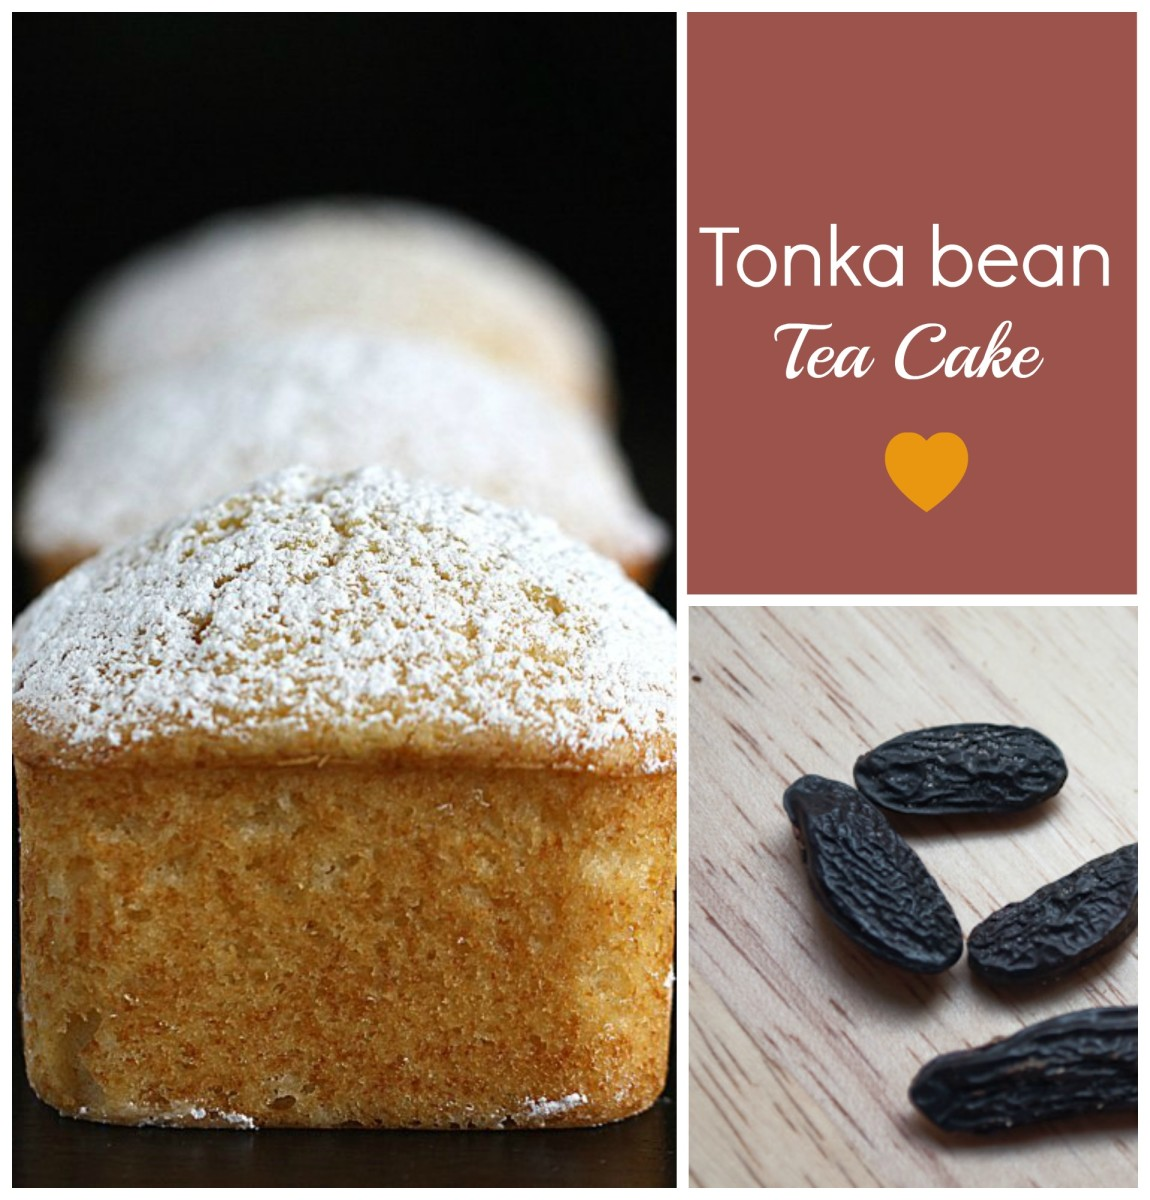 The Tonka bean is used as flavouring in the culinary world for puddings, smoothies, cakes and other desserts. Featured here is a Tonka bean Tea Cake. Image edited by healthmunsta.